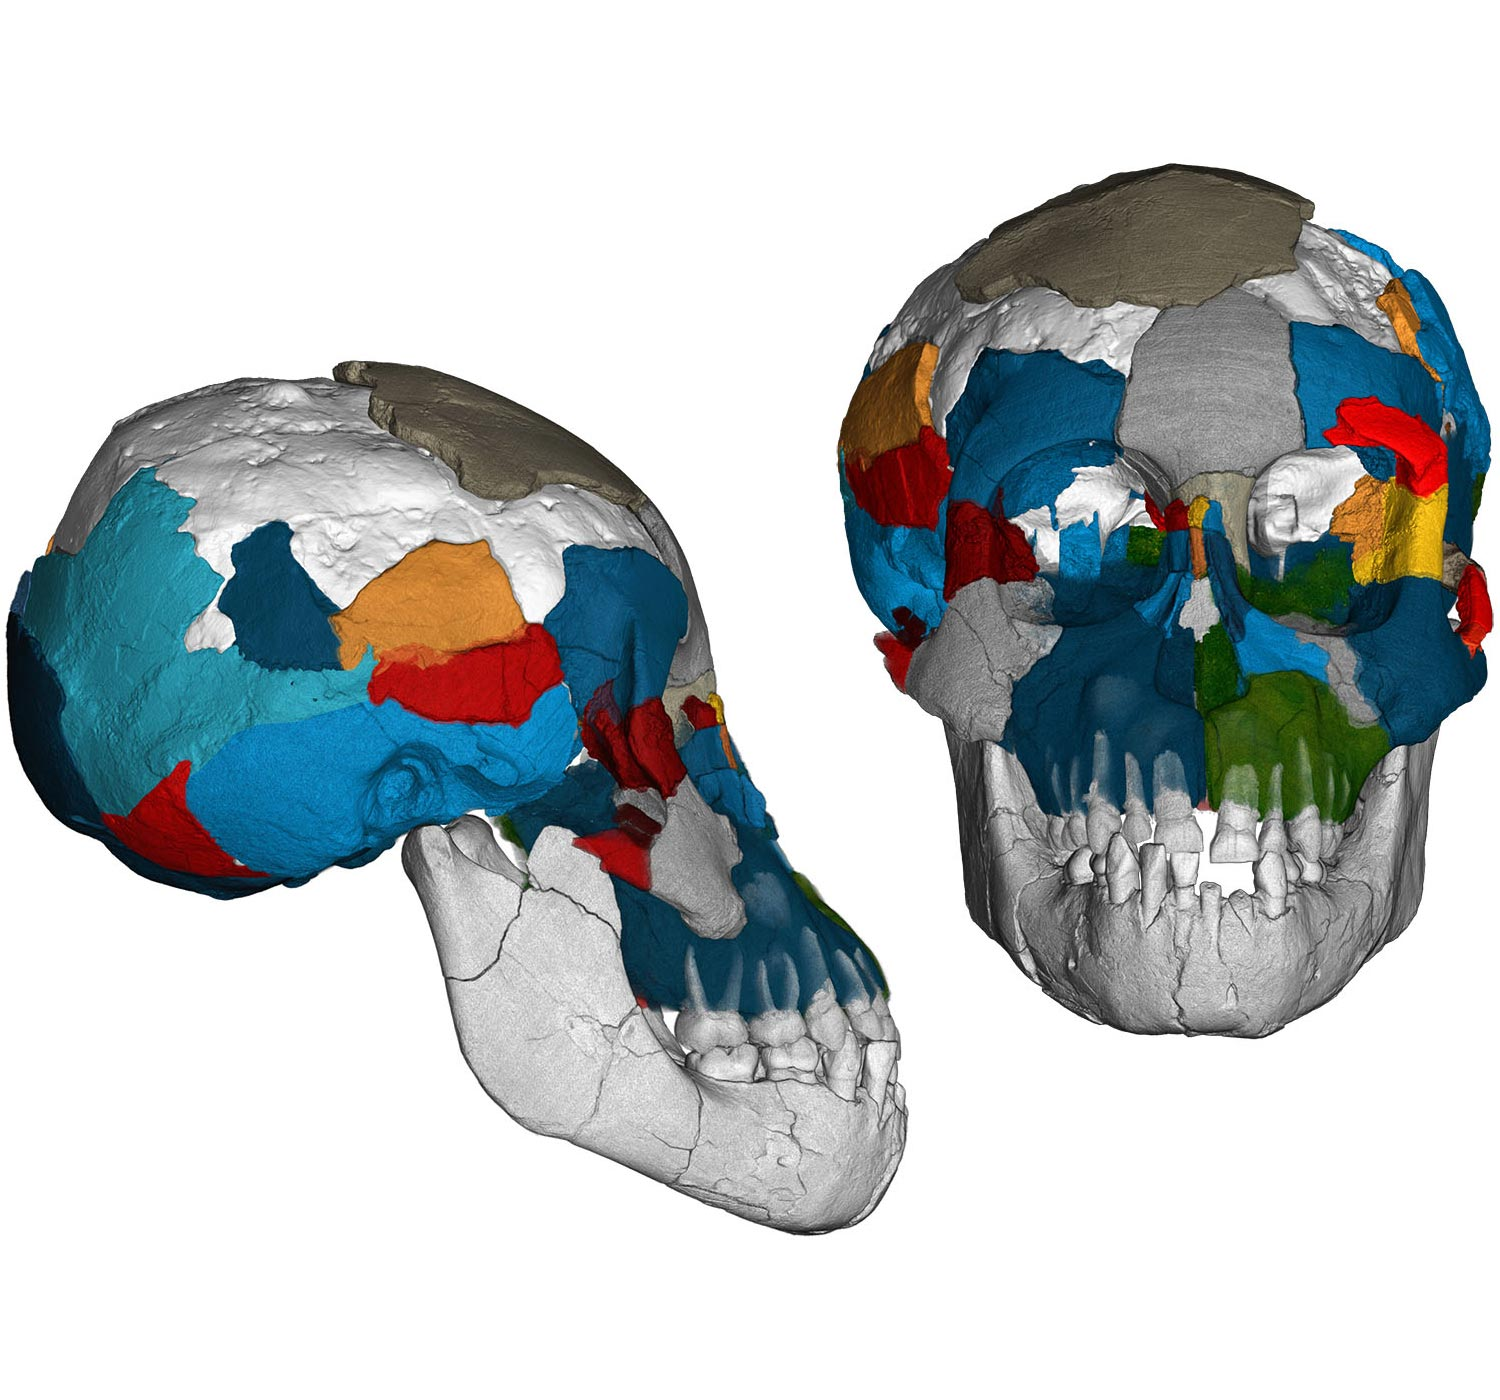 Evolutionary Secrets of Fossil Brains Revealed: �Lucy� Had Ape-Like Brain, but Longer Childhood Like Humans - SciTechDaily